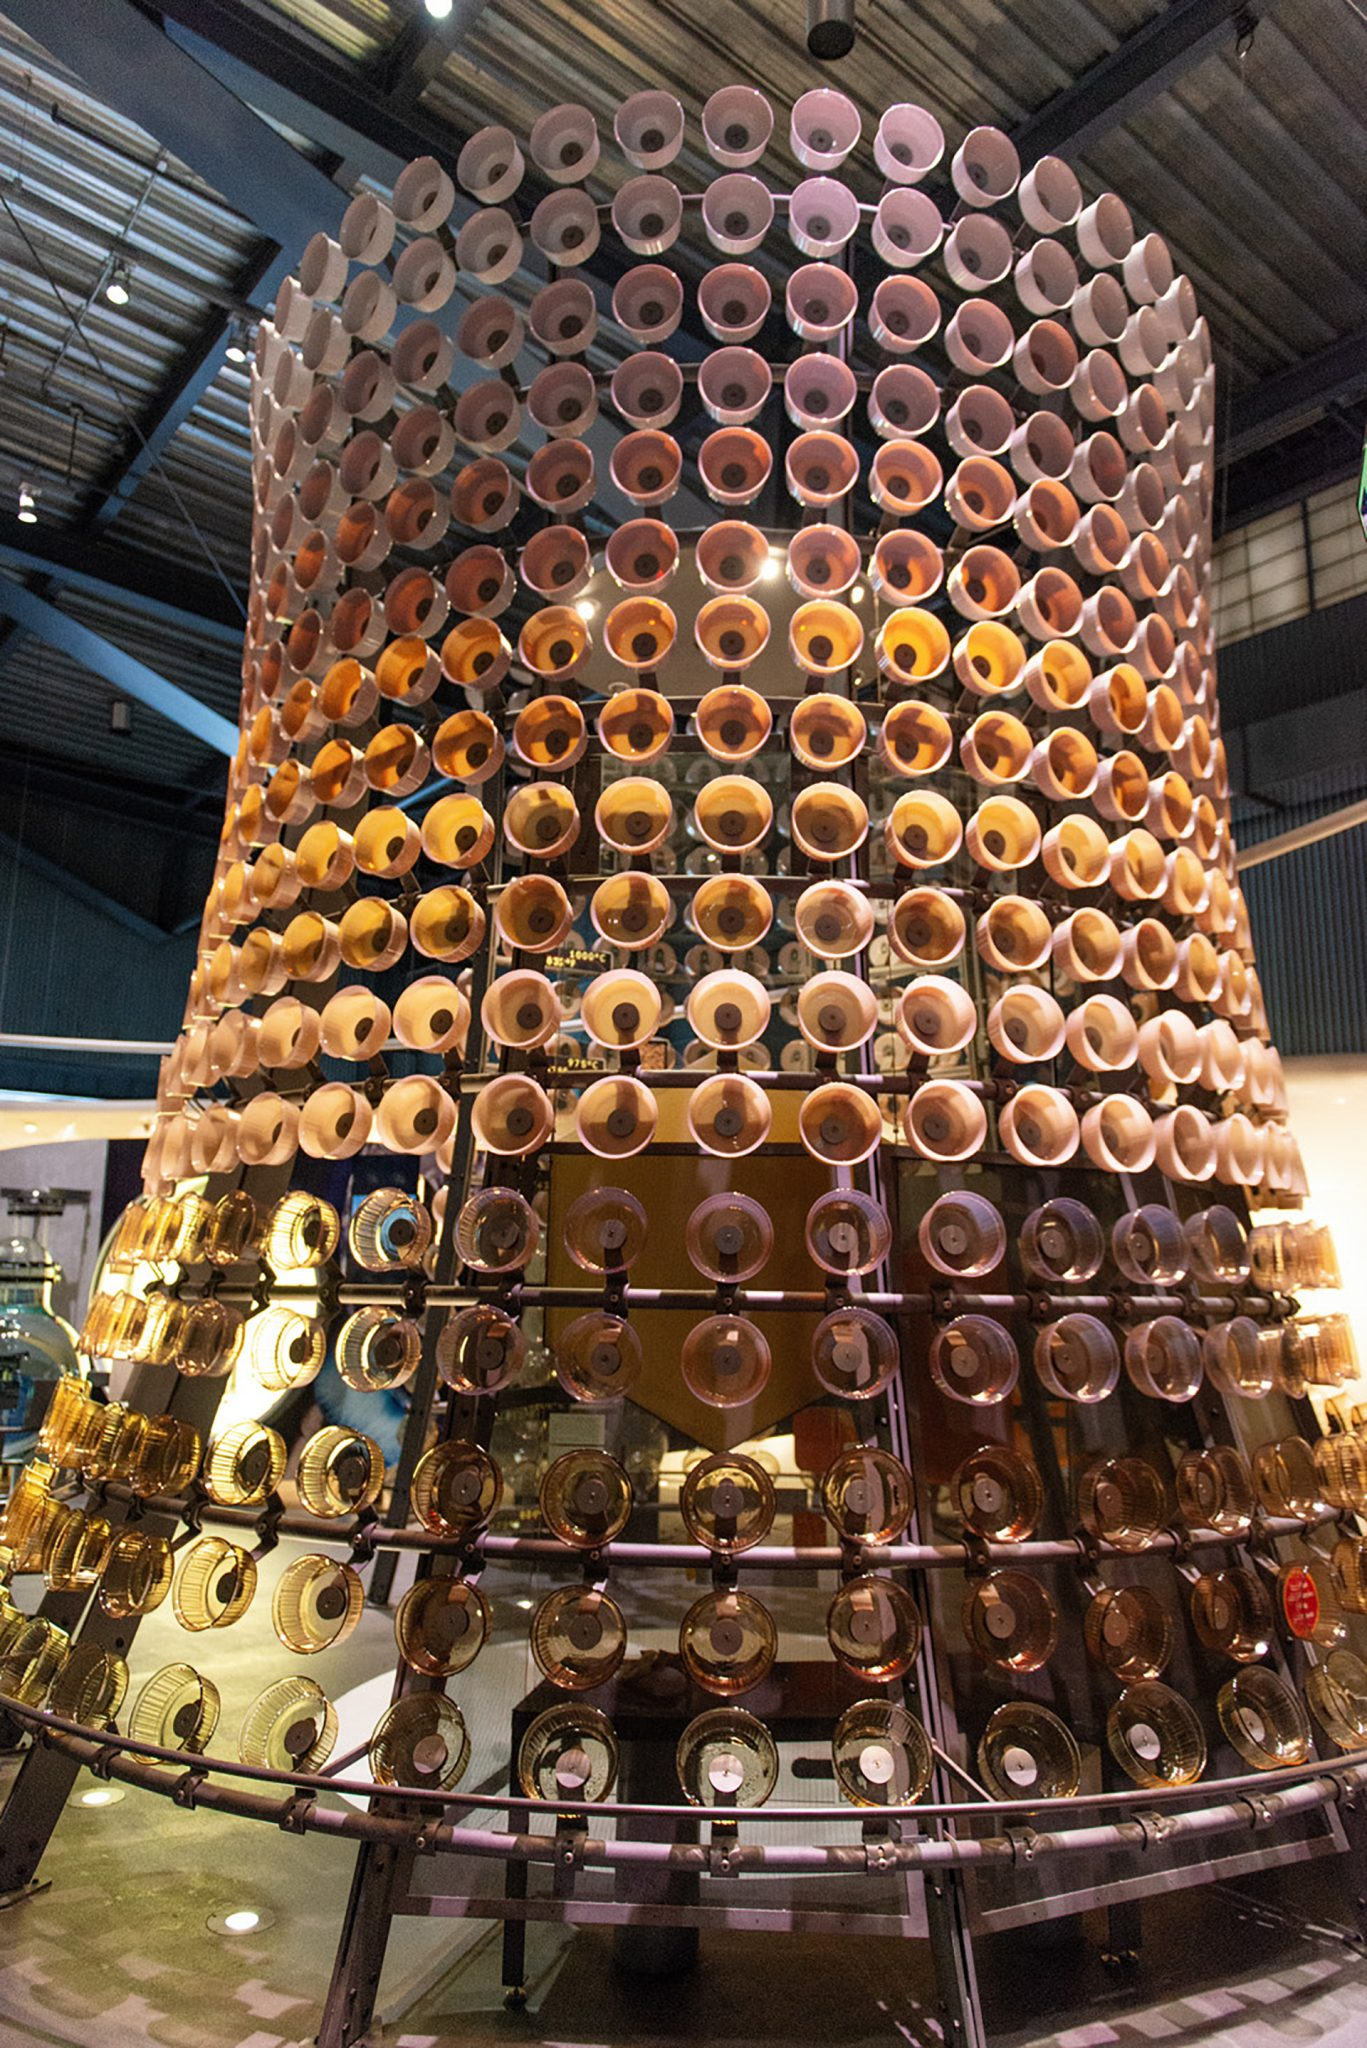 Casserole Tower at the Corning Museum of Glass